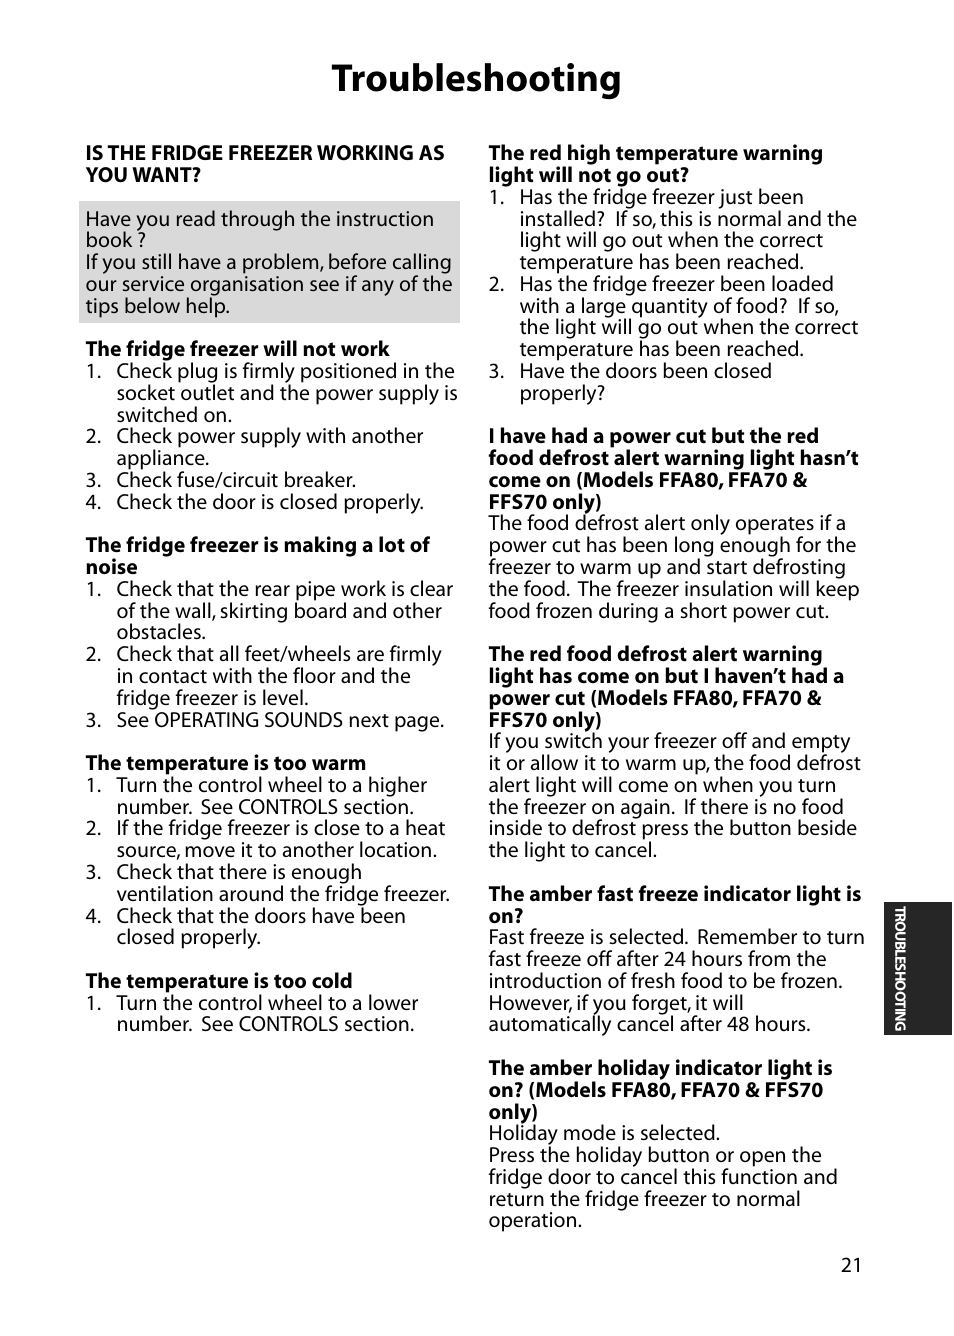 Troubleshooting | Hotpoint FFS70 User Manual | Page 21 / 28